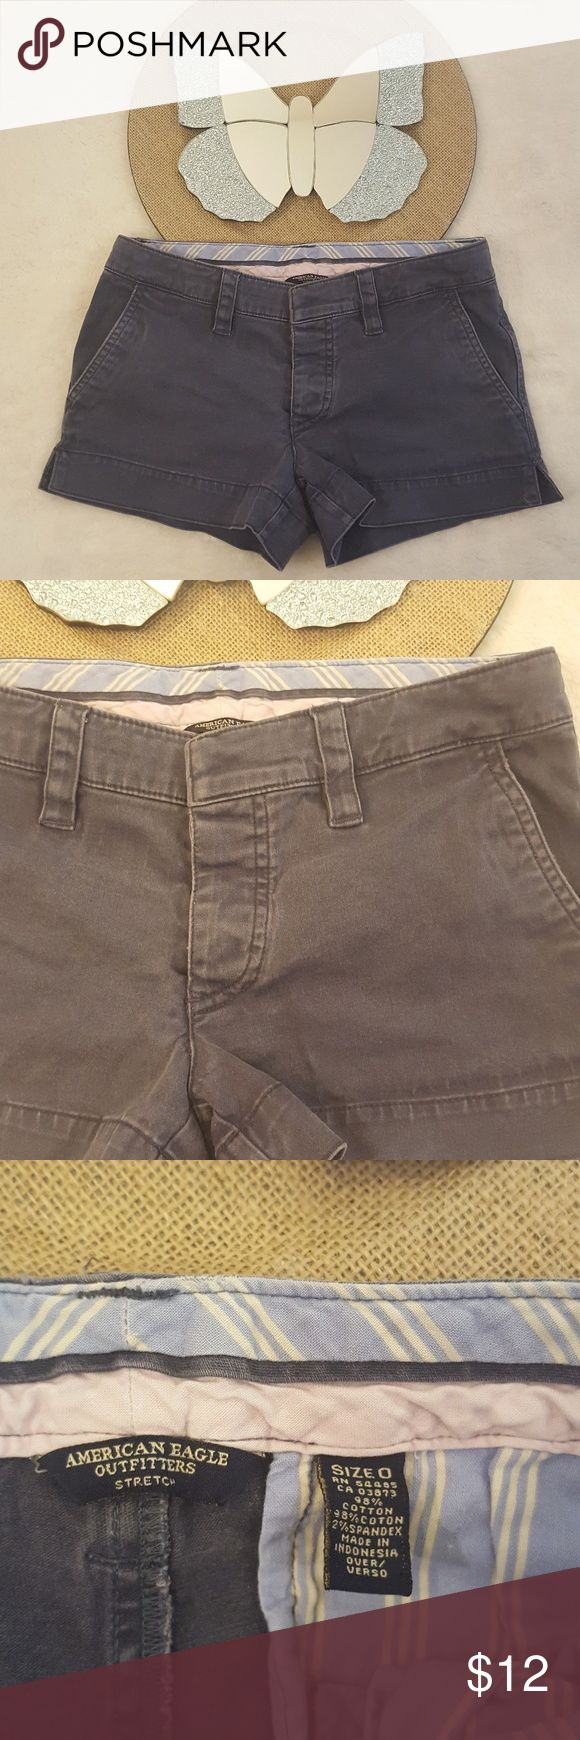 "Womens American Eagle Blue Chino Shorts 0 American Eagle Blue-gray chino short shorts. They have a clasp and 3 button fly. They are in good used condition with normal wash wear such as noticeable fading and ""pre-pilling.""  Flat across waist 13.75"" Hips 15.75"" Front Rise 6.5"" Inseam 2.5"" Cotton blend   *Butterfly not included  Storage location #252 Item #2661 American Eagle Outfitters Shorts"